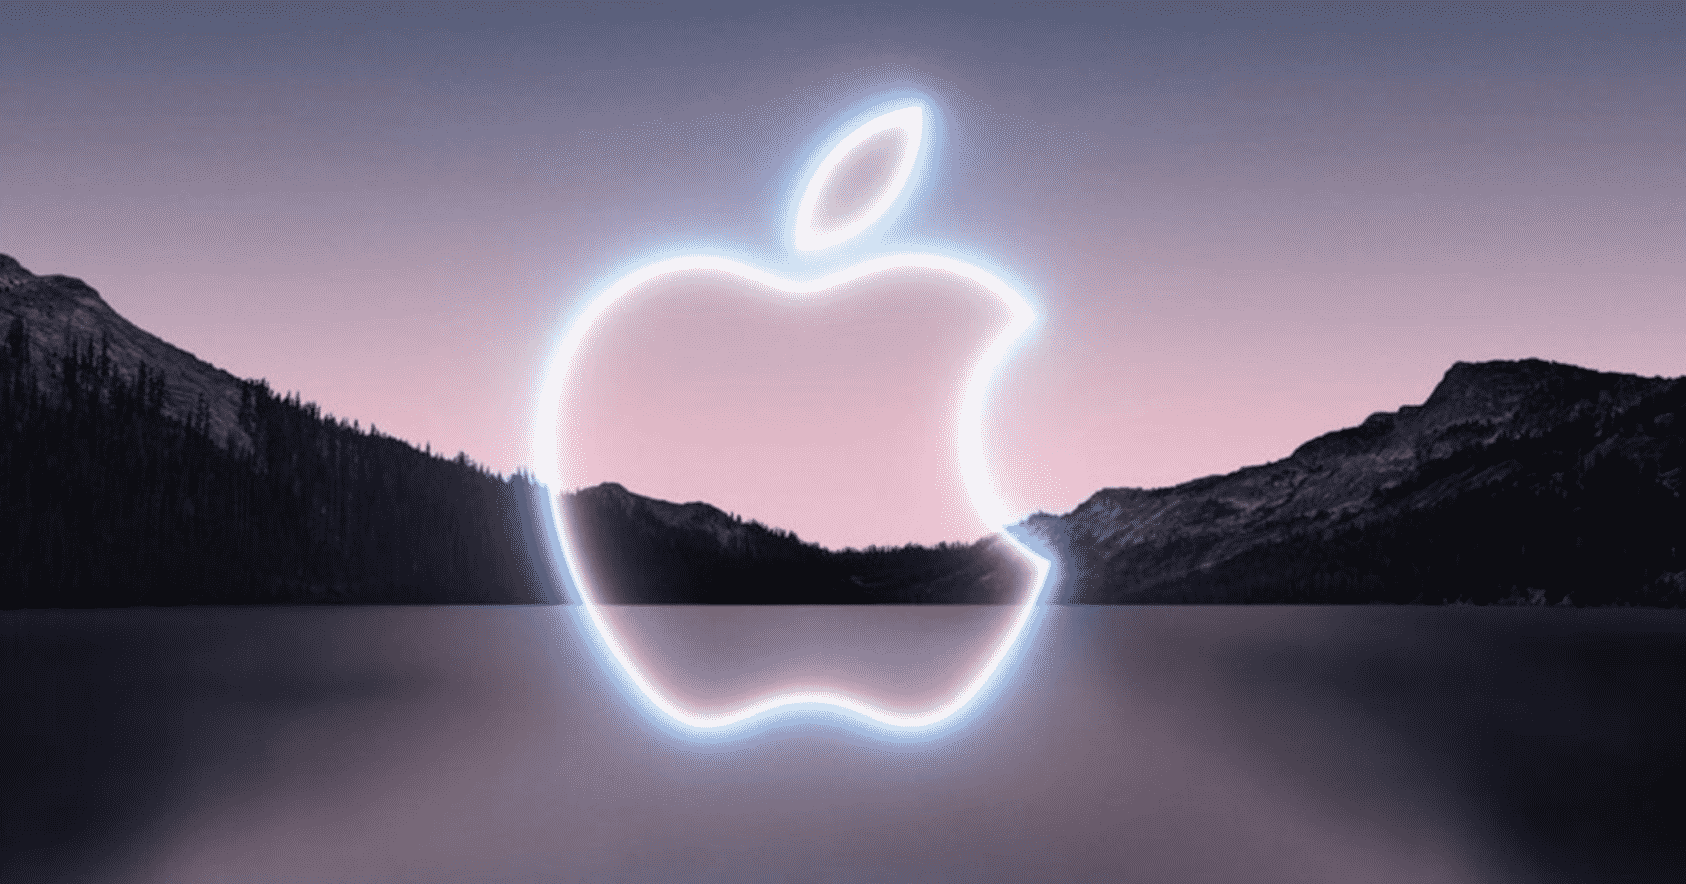 First 'California Streaming' event may feature only Apple Watch Series 7 and iPhone 13